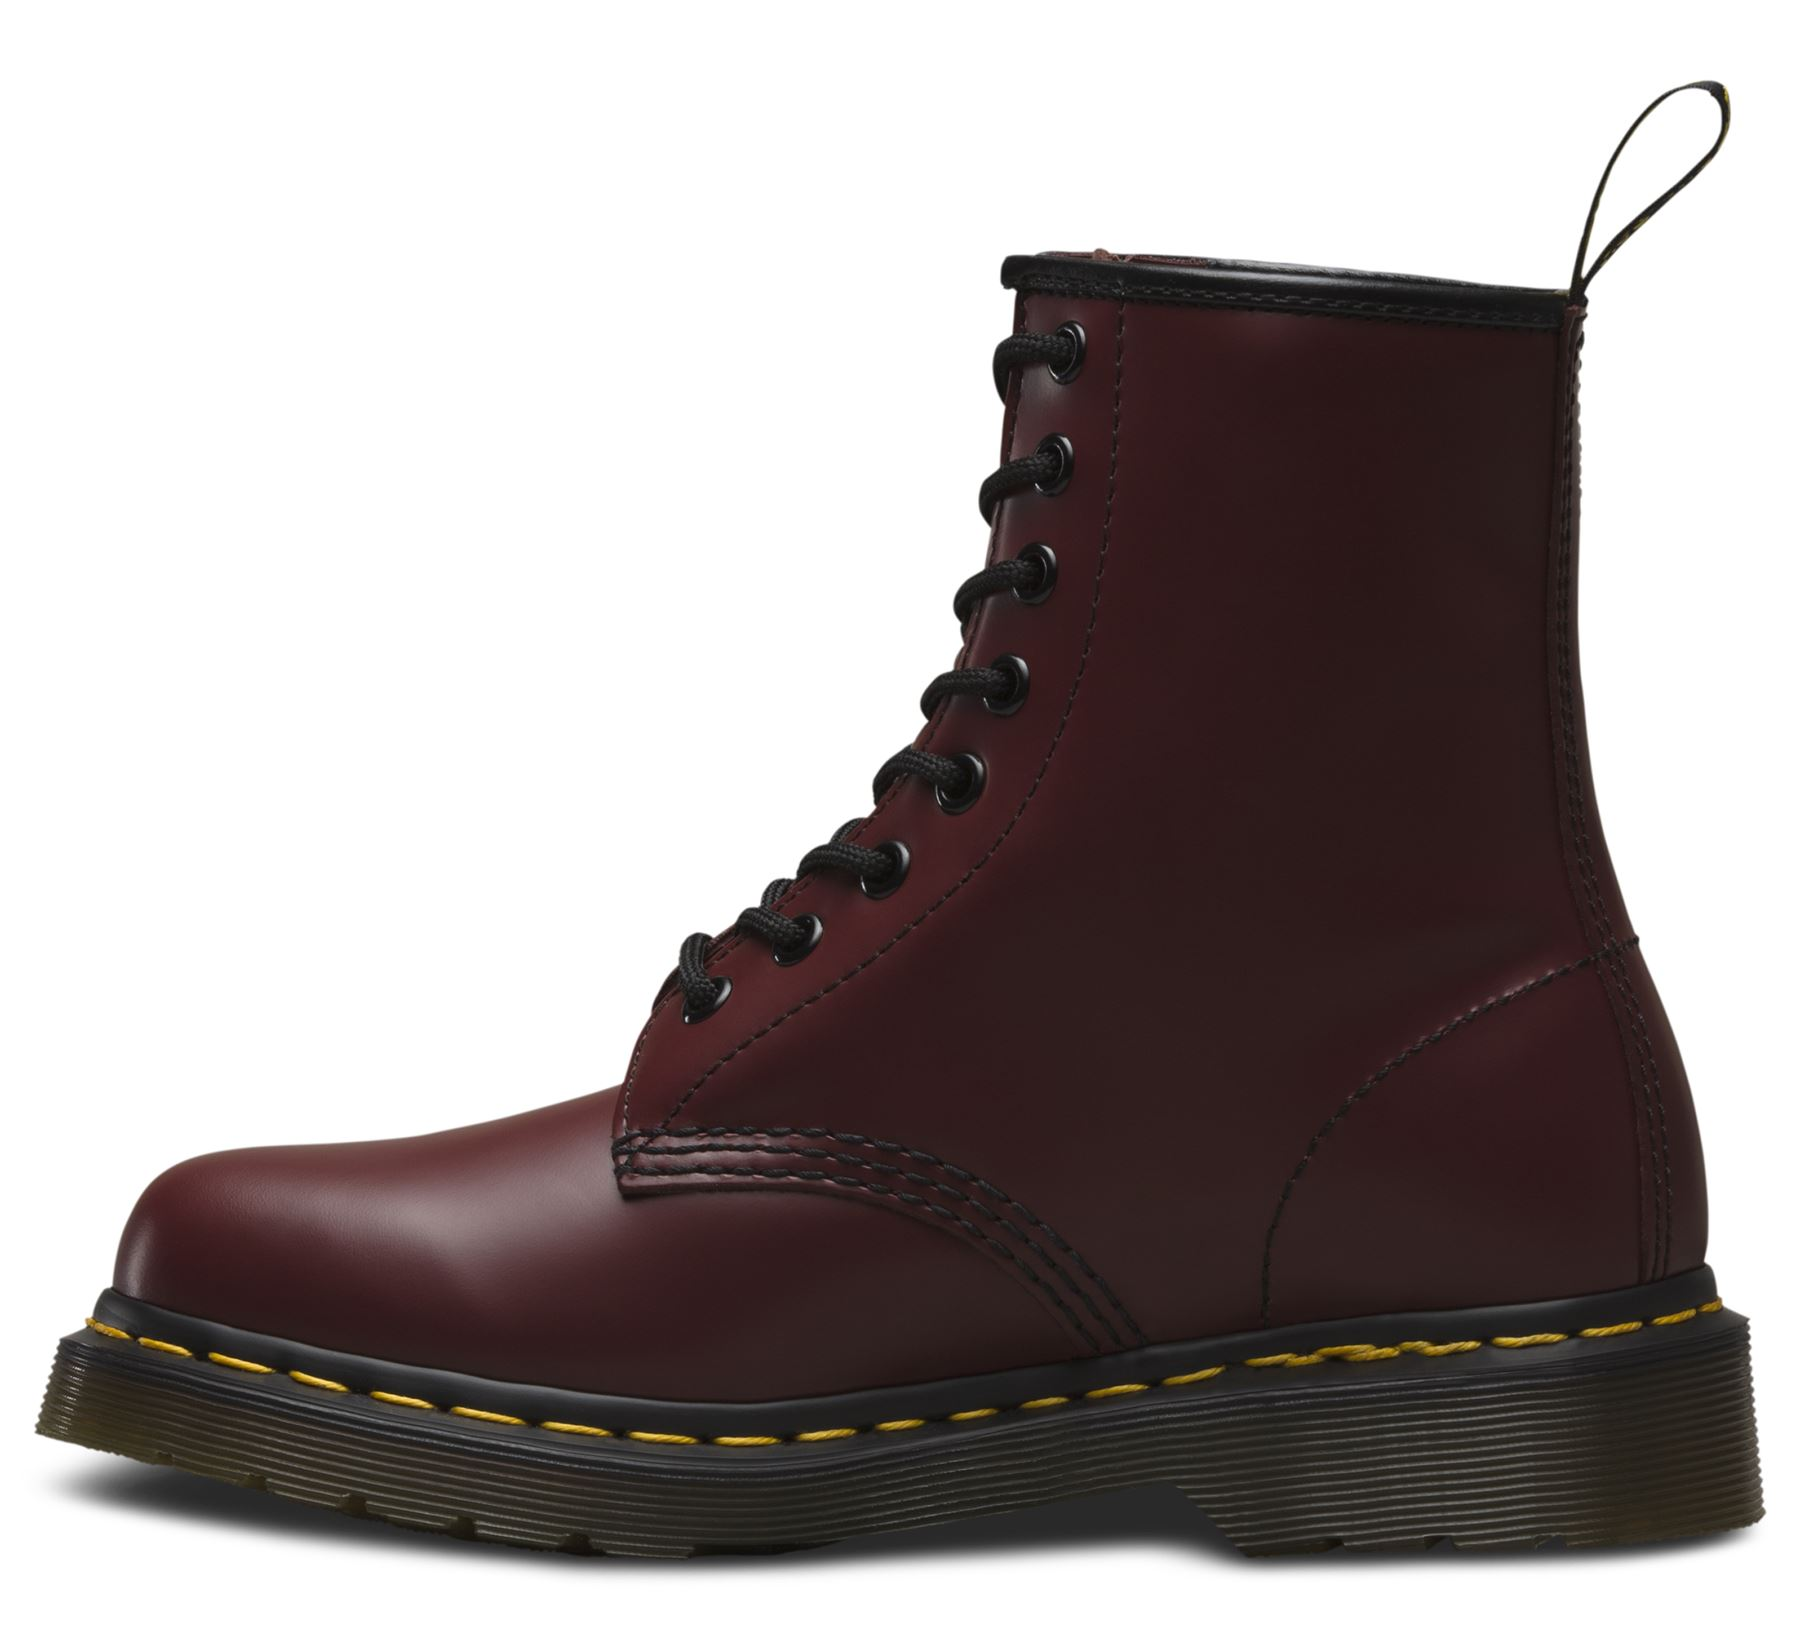 dr martens unisex 1460 cherry red classic smooth leather 8. Black Bedroom Furniture Sets. Home Design Ideas